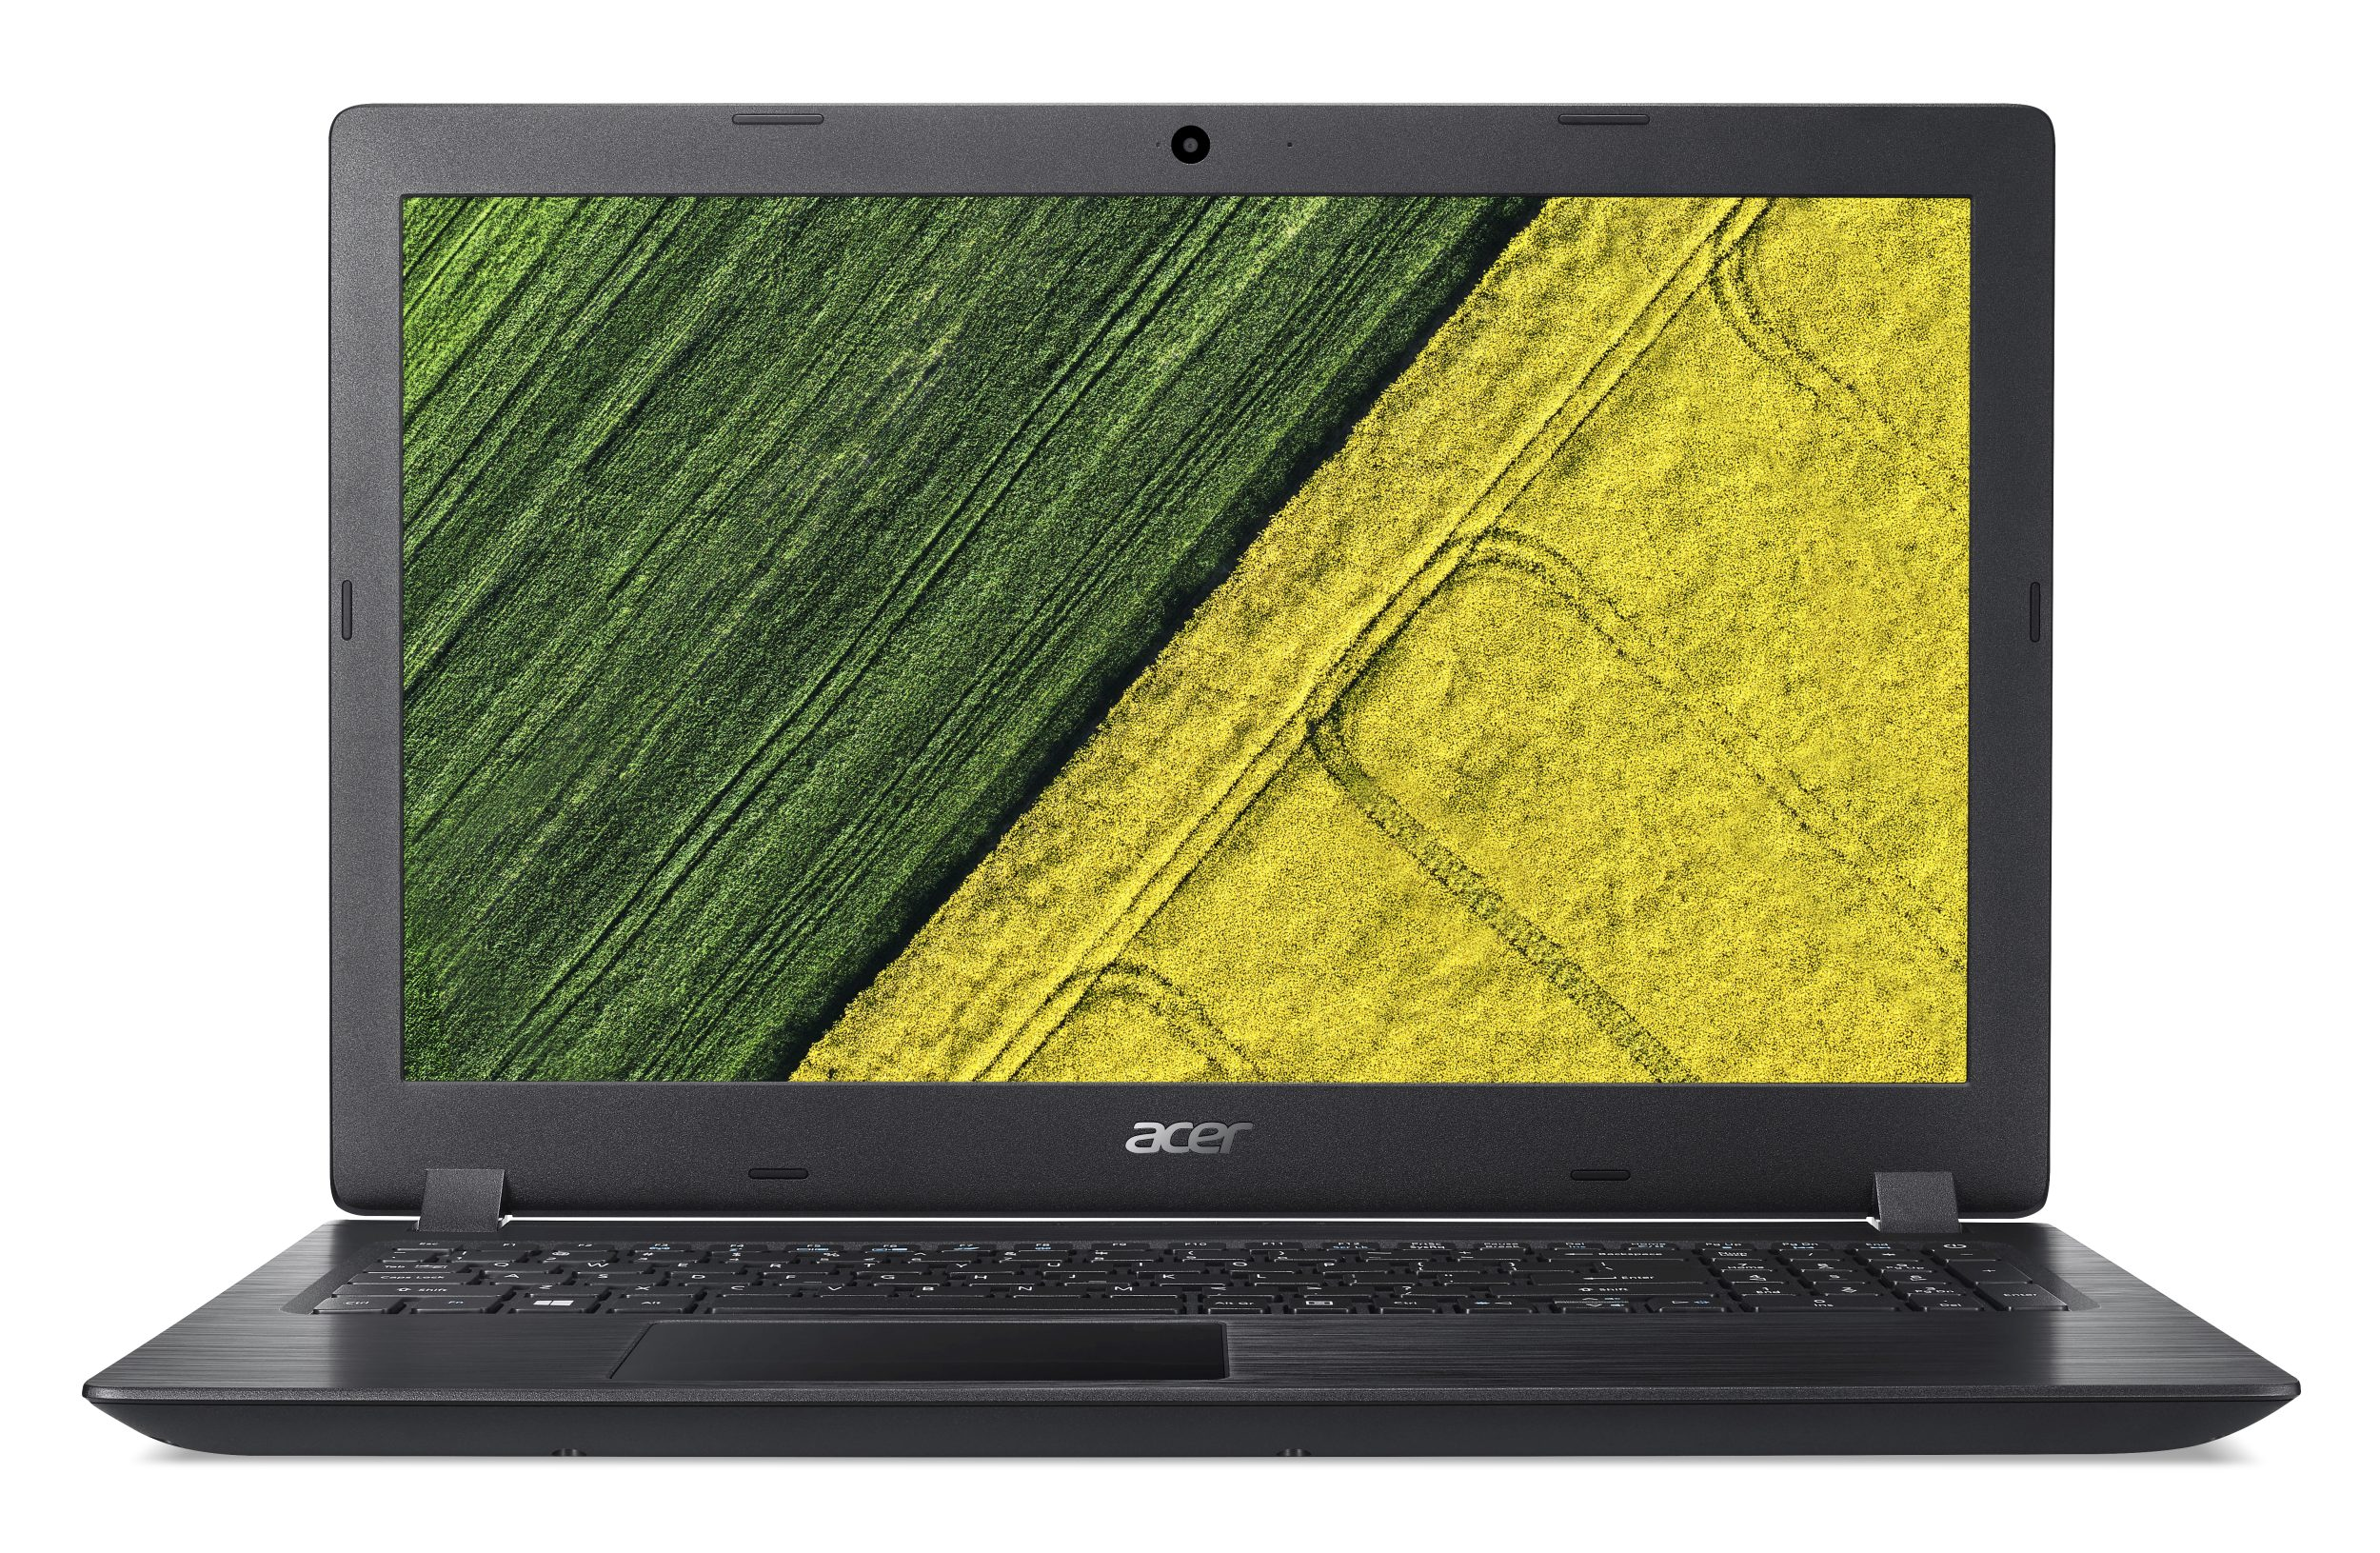 "Acer Aspire 3 (A315-51-385R) i3-6006U/4GB/128GB SSD/HD Graphics/15,6"" FHD LED matný/BT/W10 Home/Black"